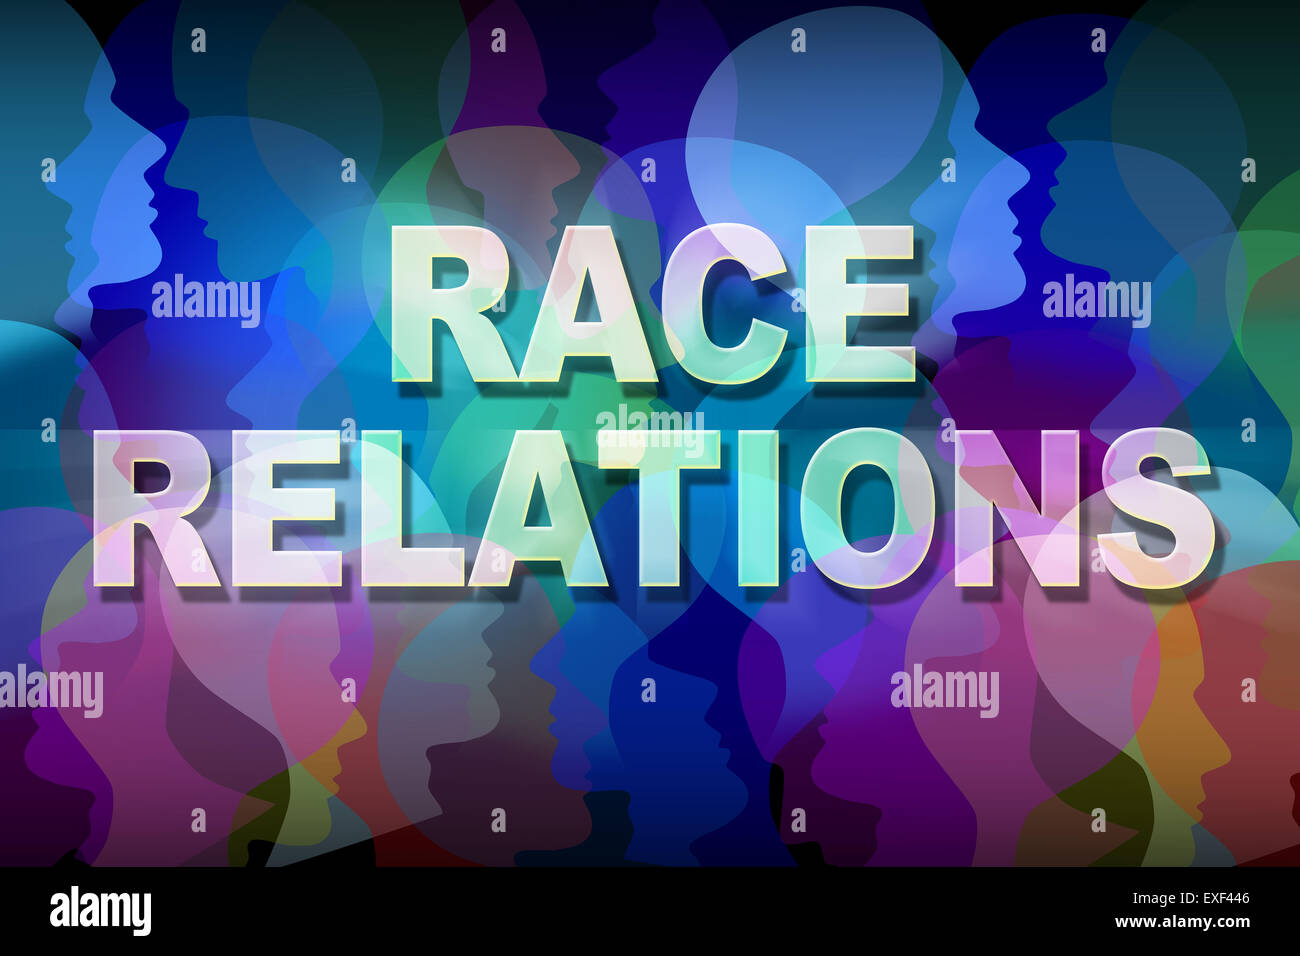 Race relations social issue concept as a group of people heads and faces of different colors with text as a symbol - Stock Image